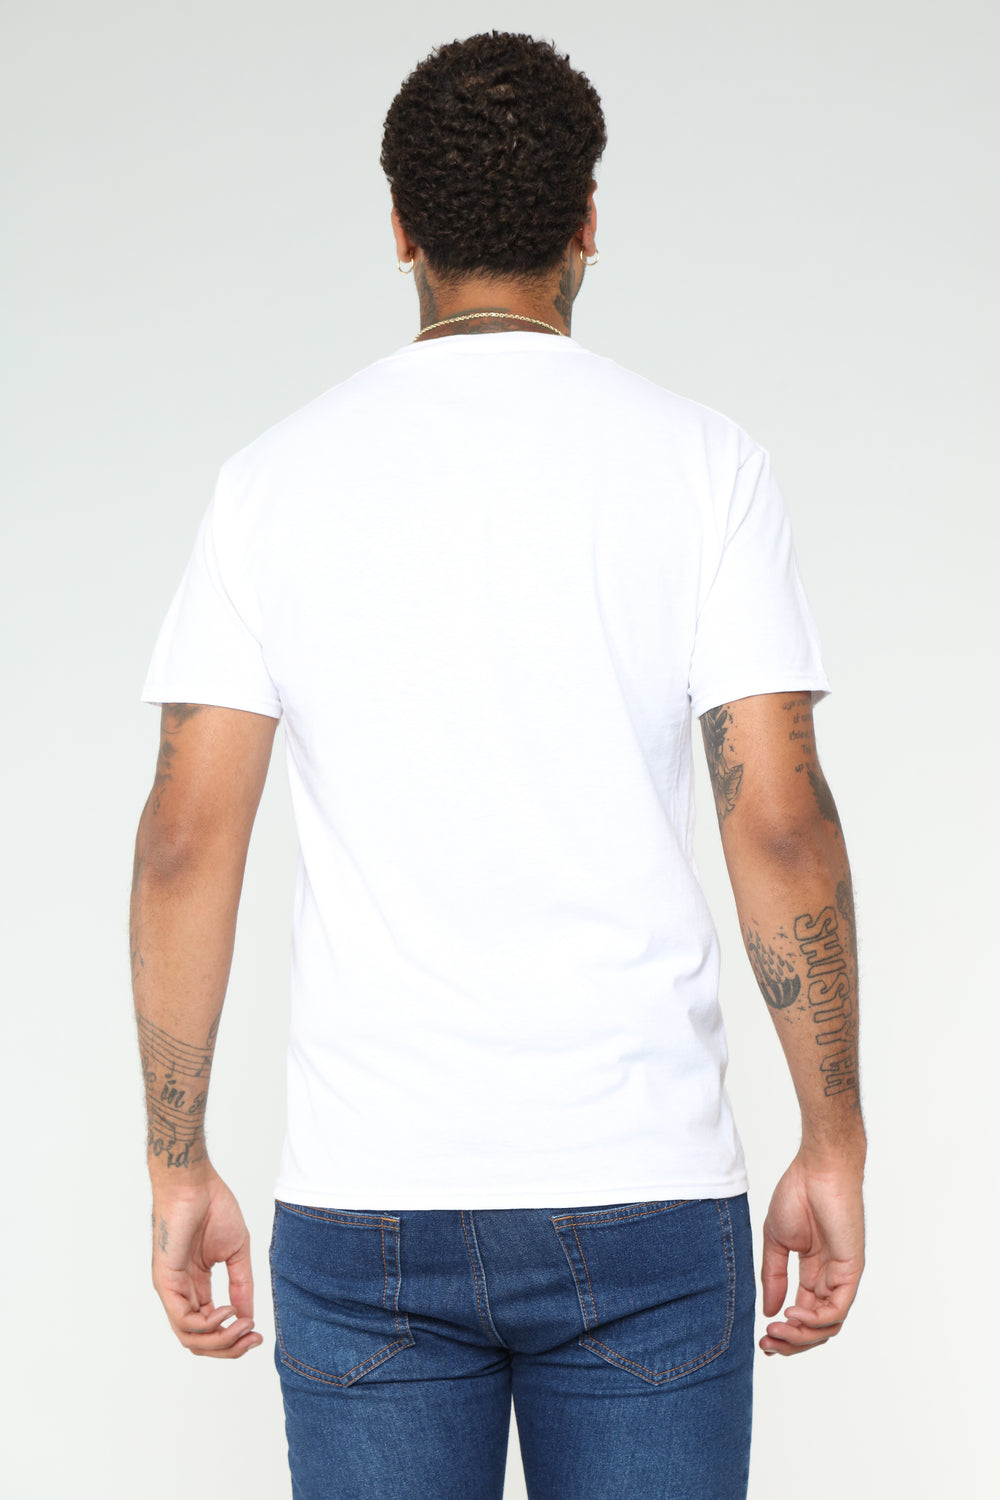 Free Short Sleeve Tee - White